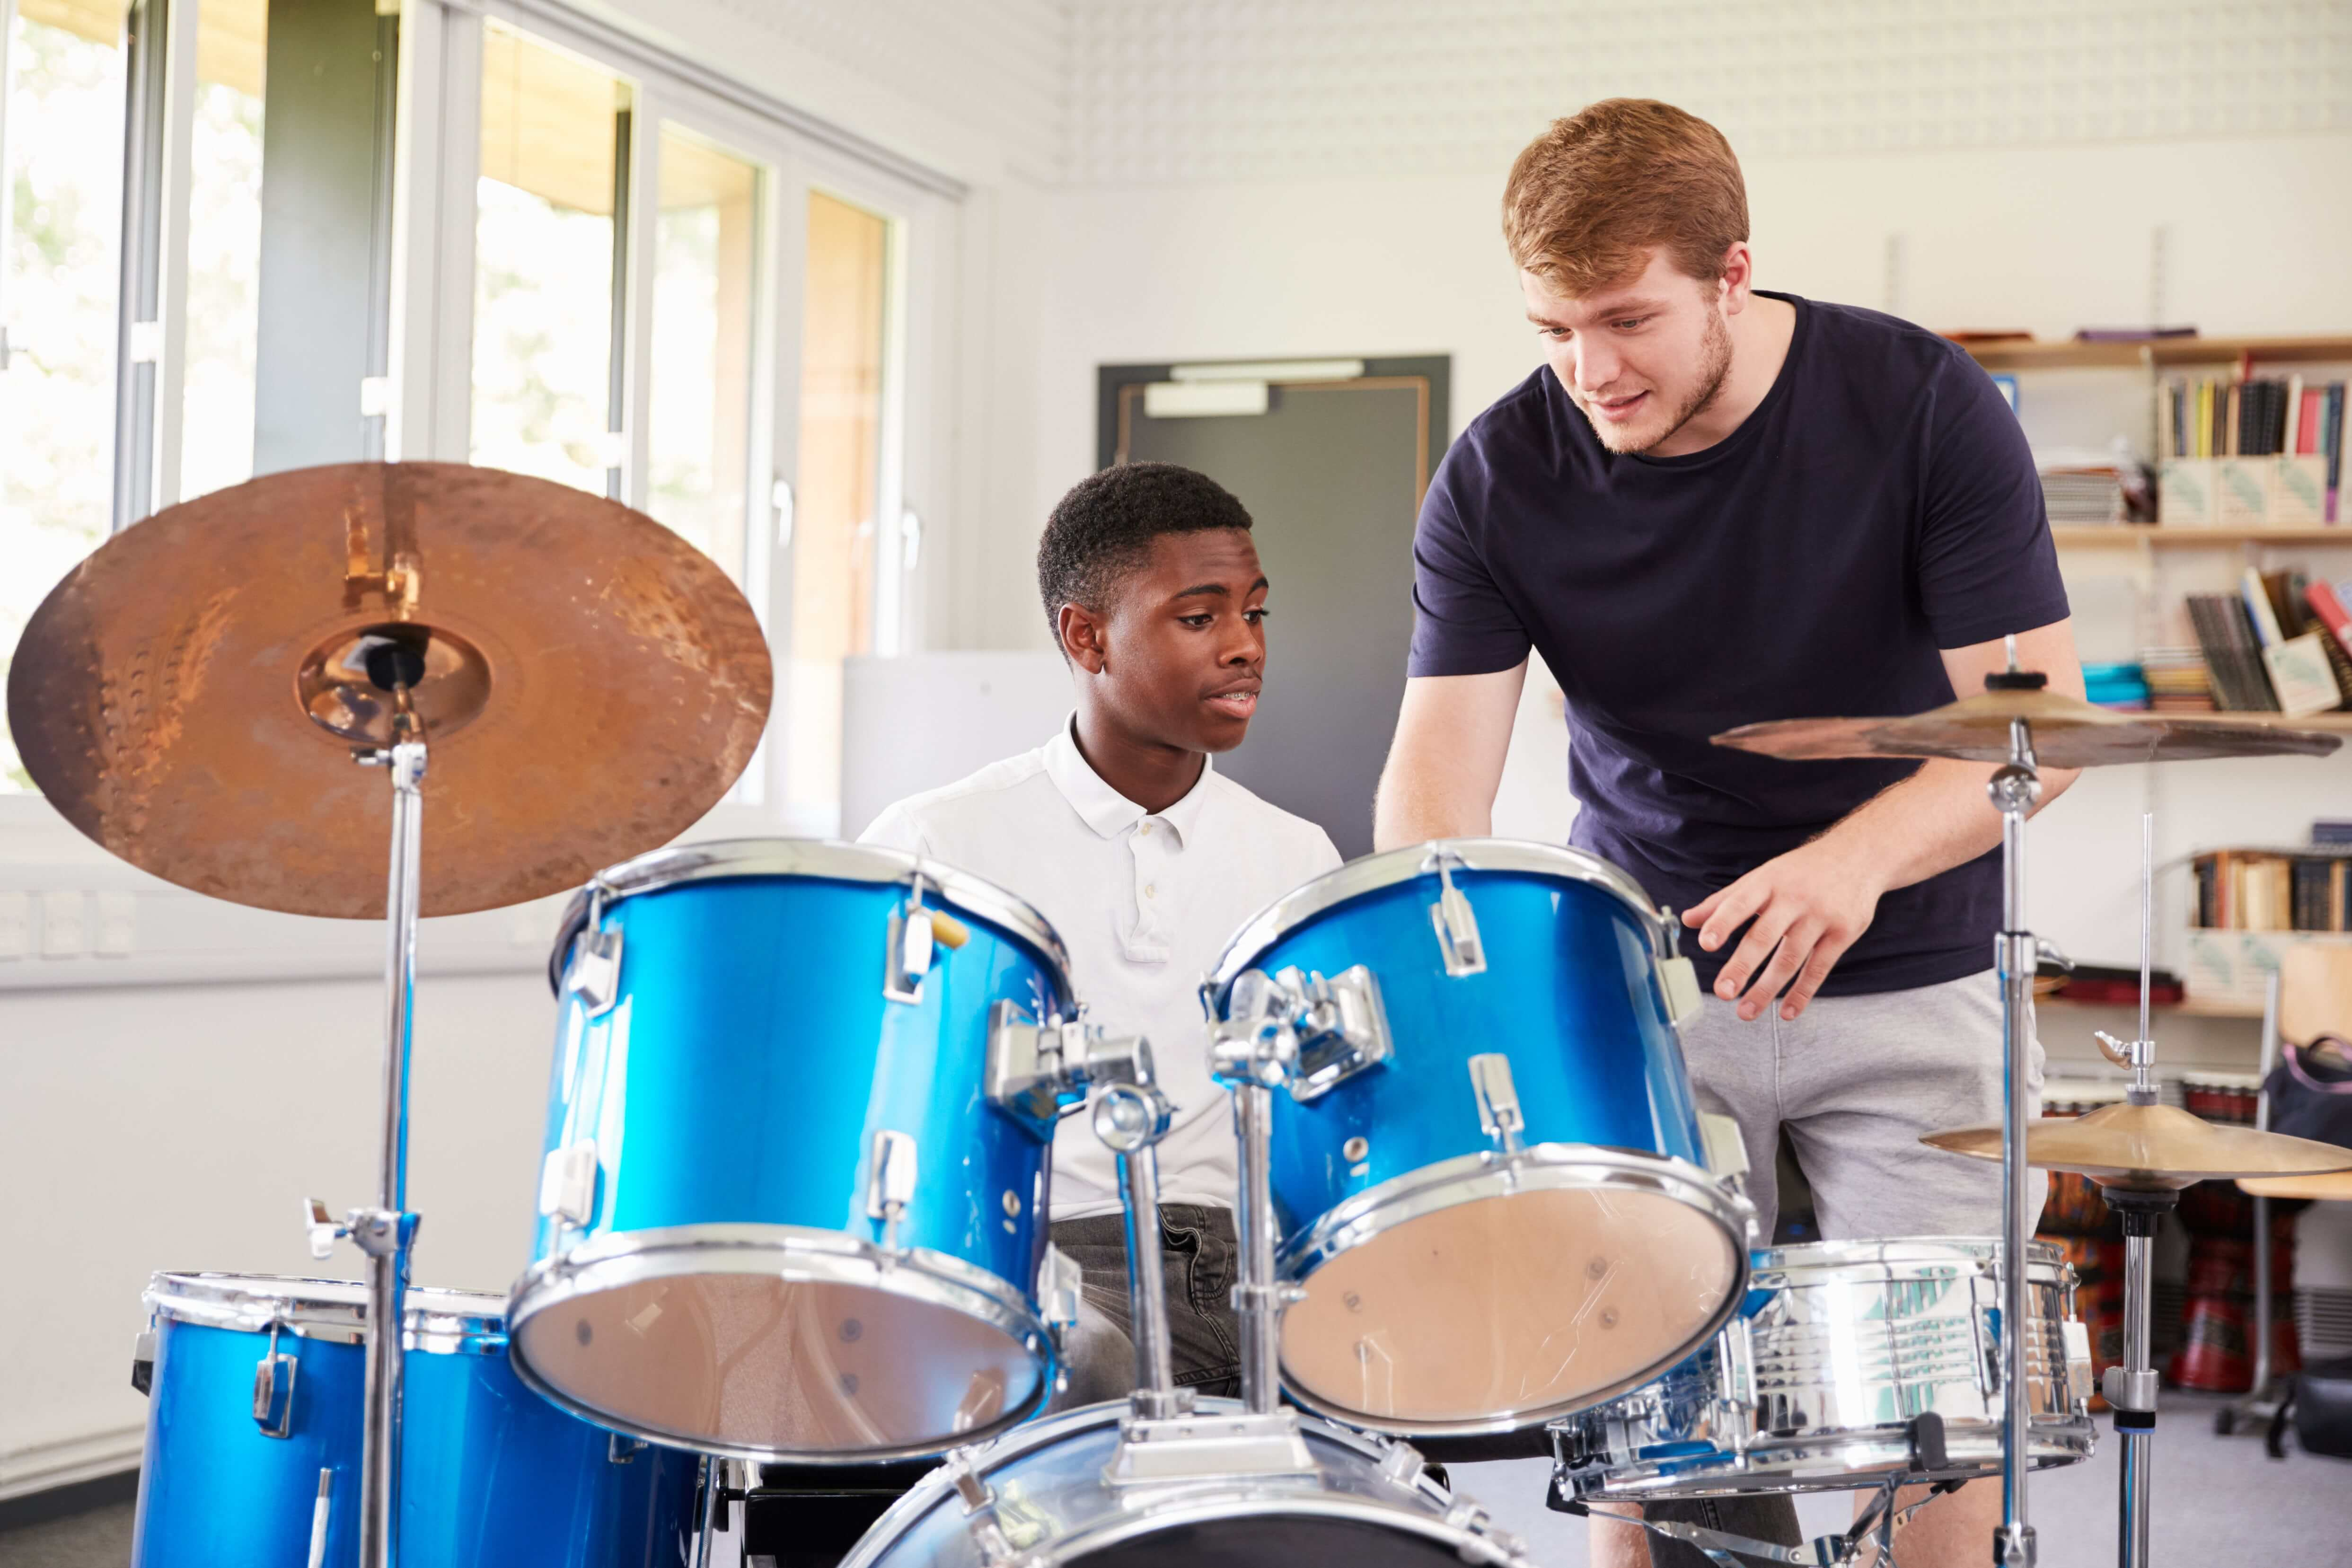 Students discussing their Drum lessons